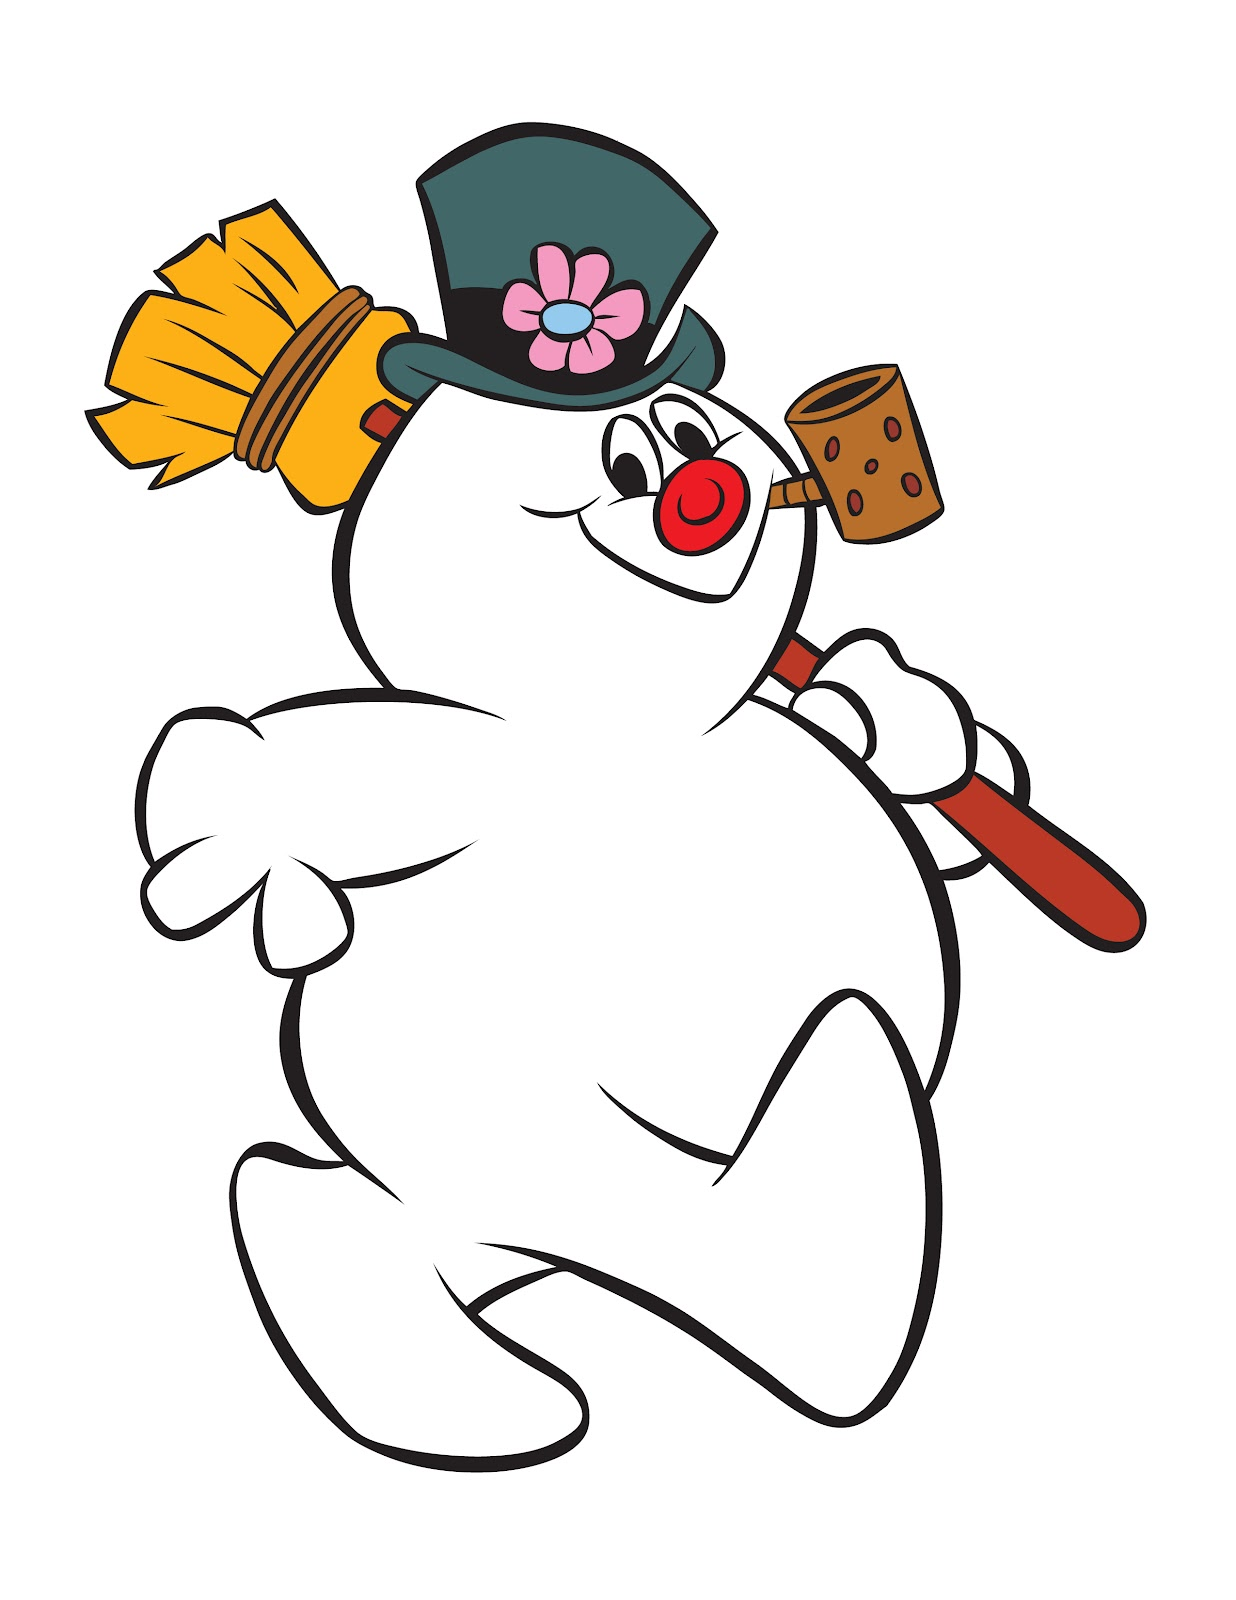 Animated frosty the snowman .